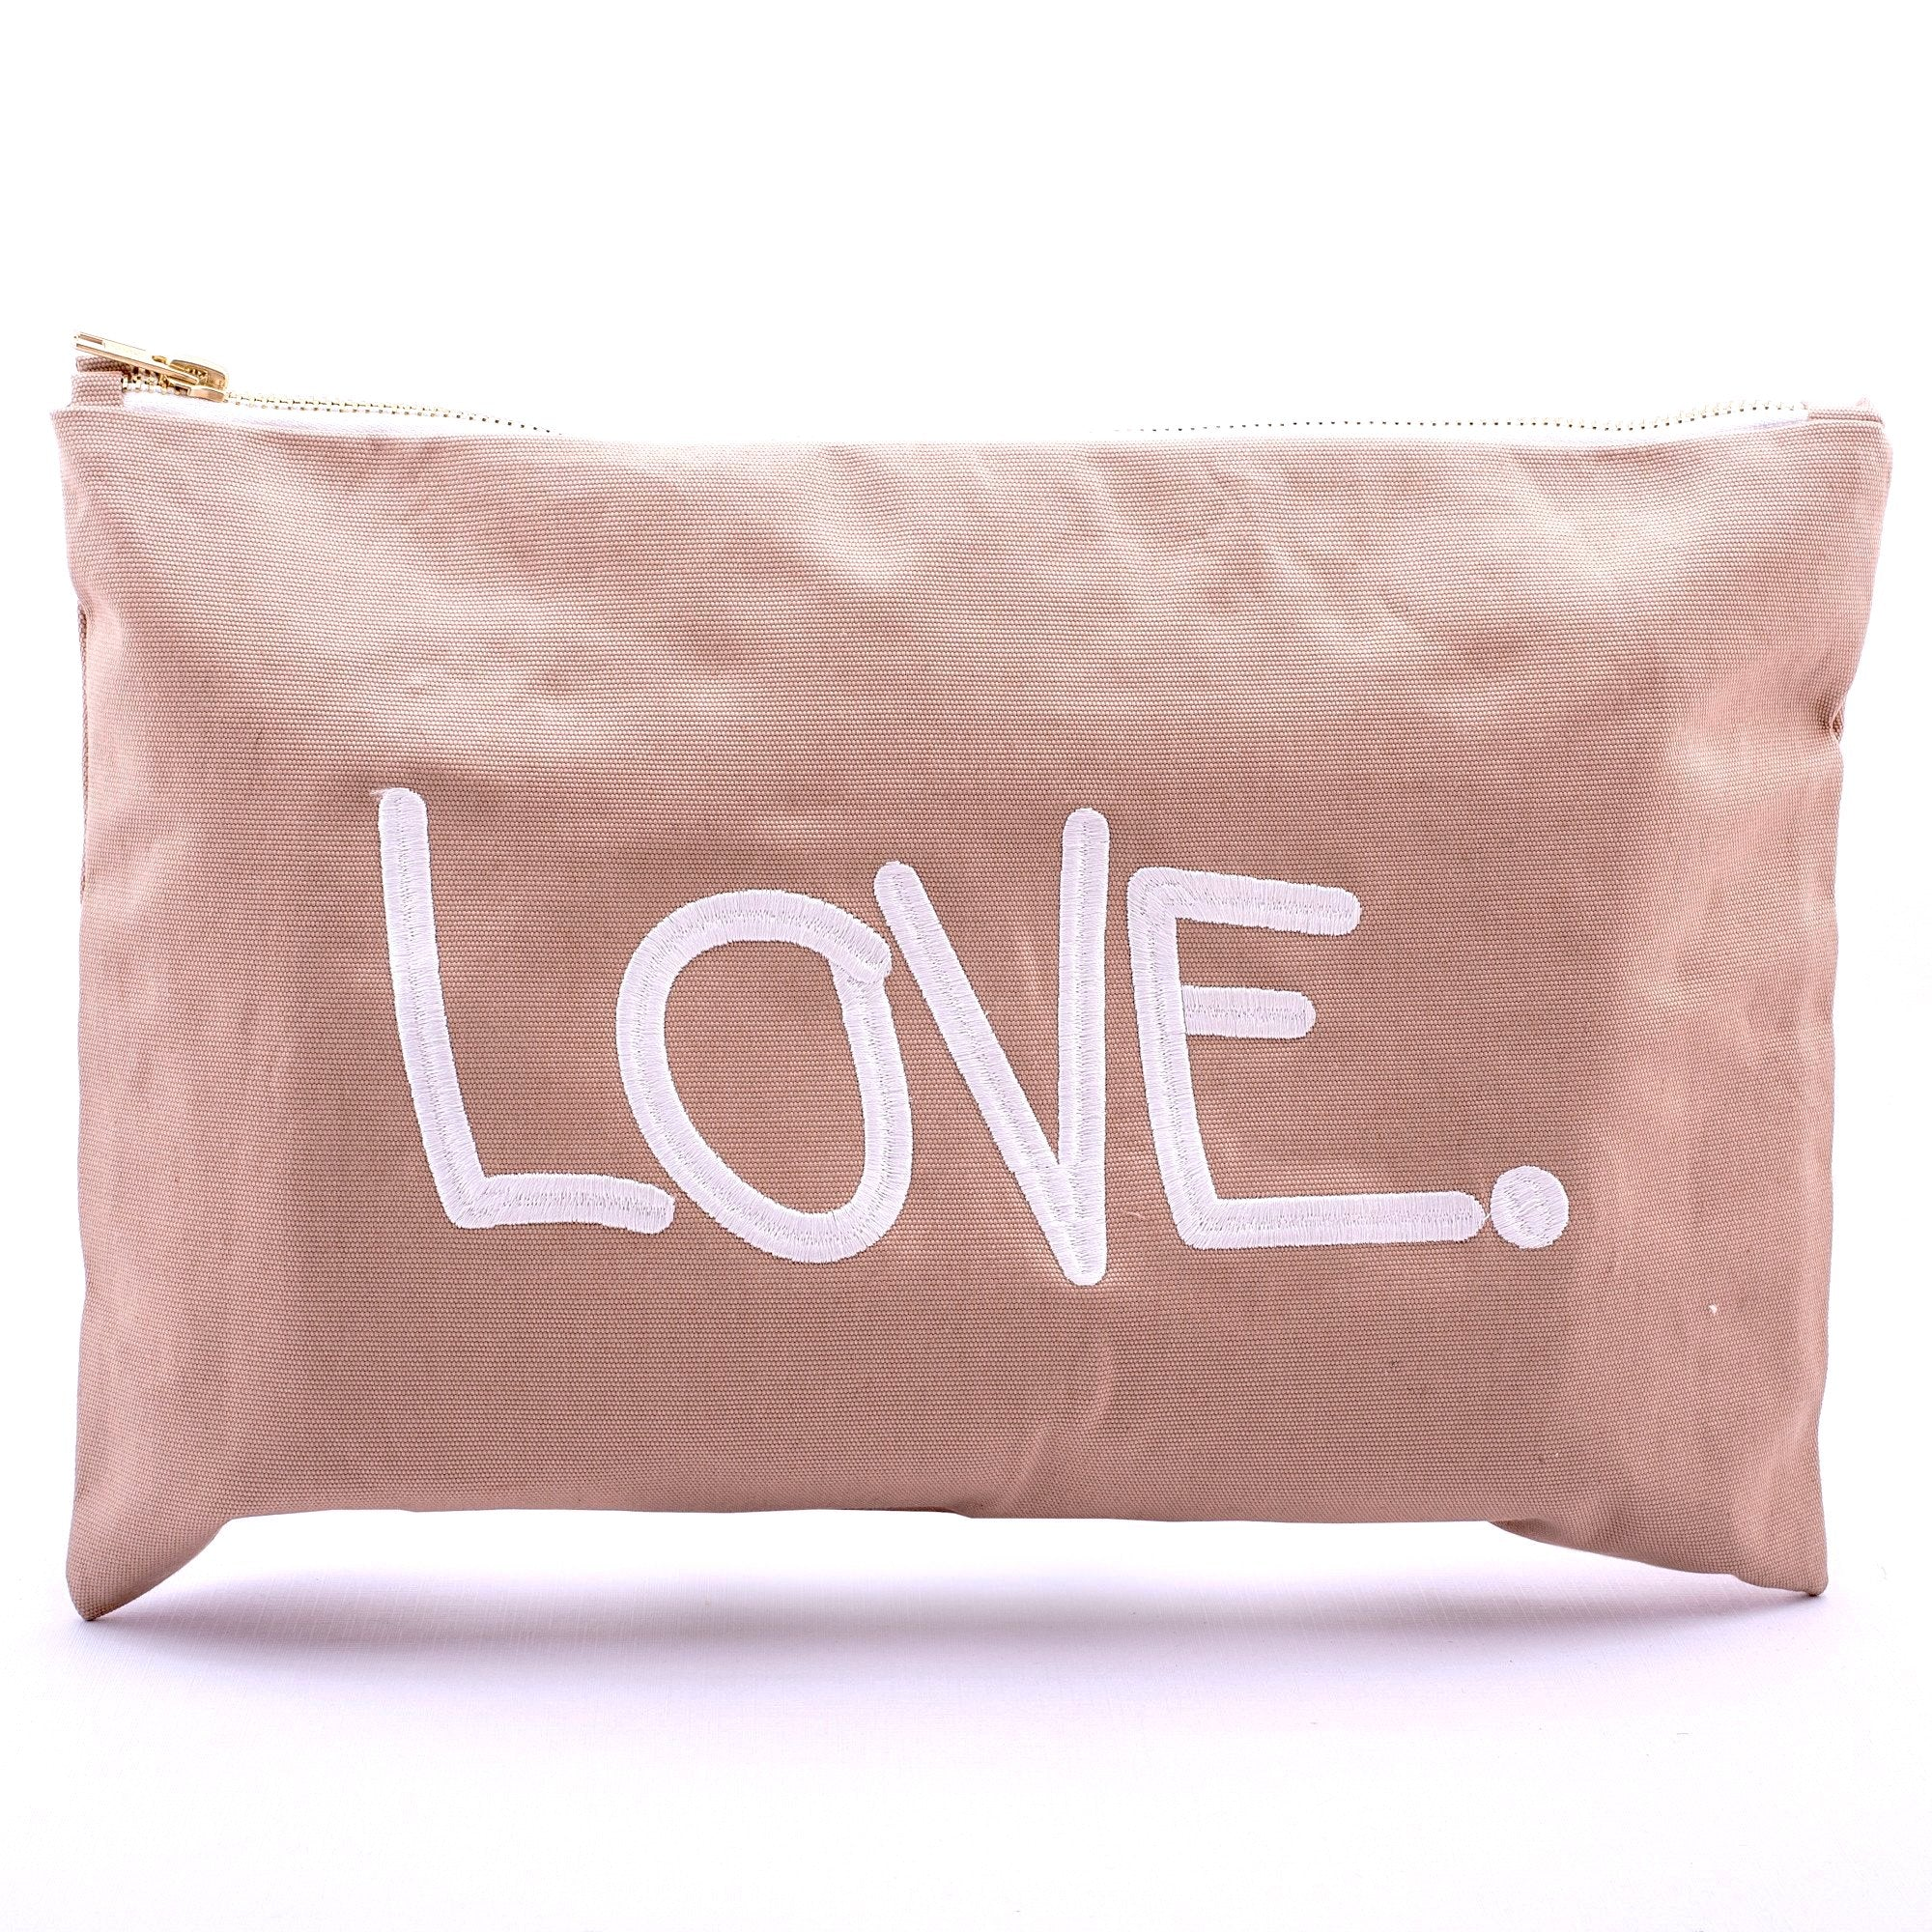 LOVE. Pouch gross, beige